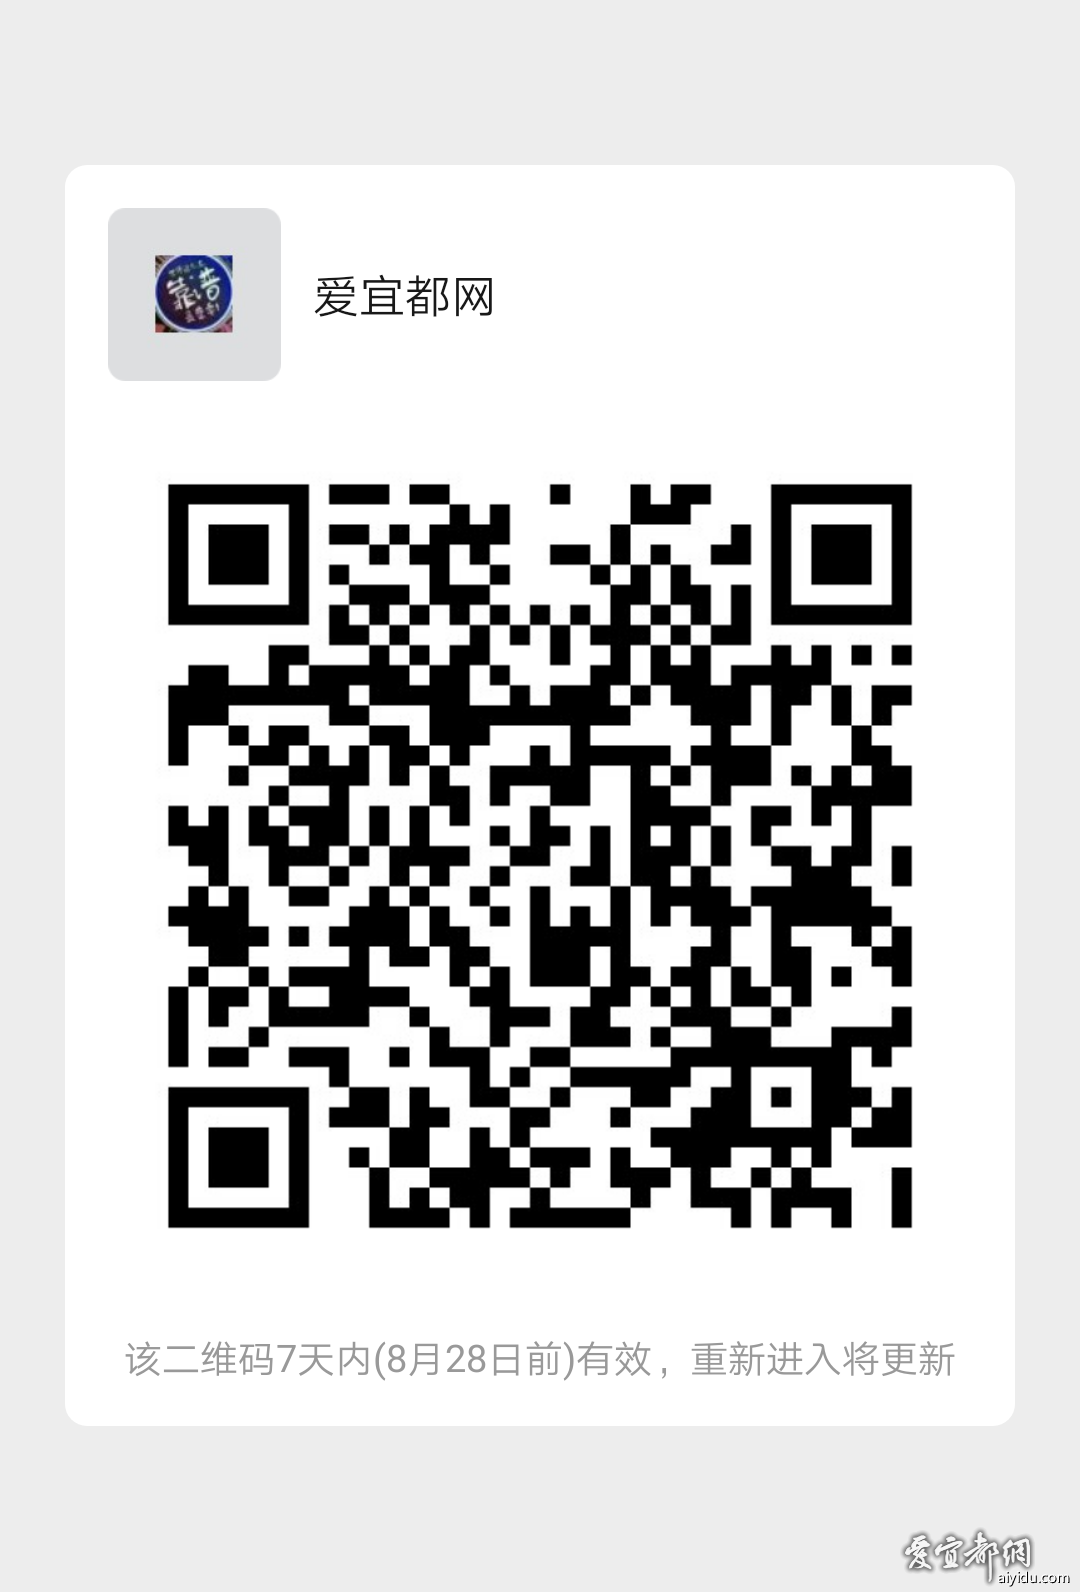 mmqrcode1566343762793.png